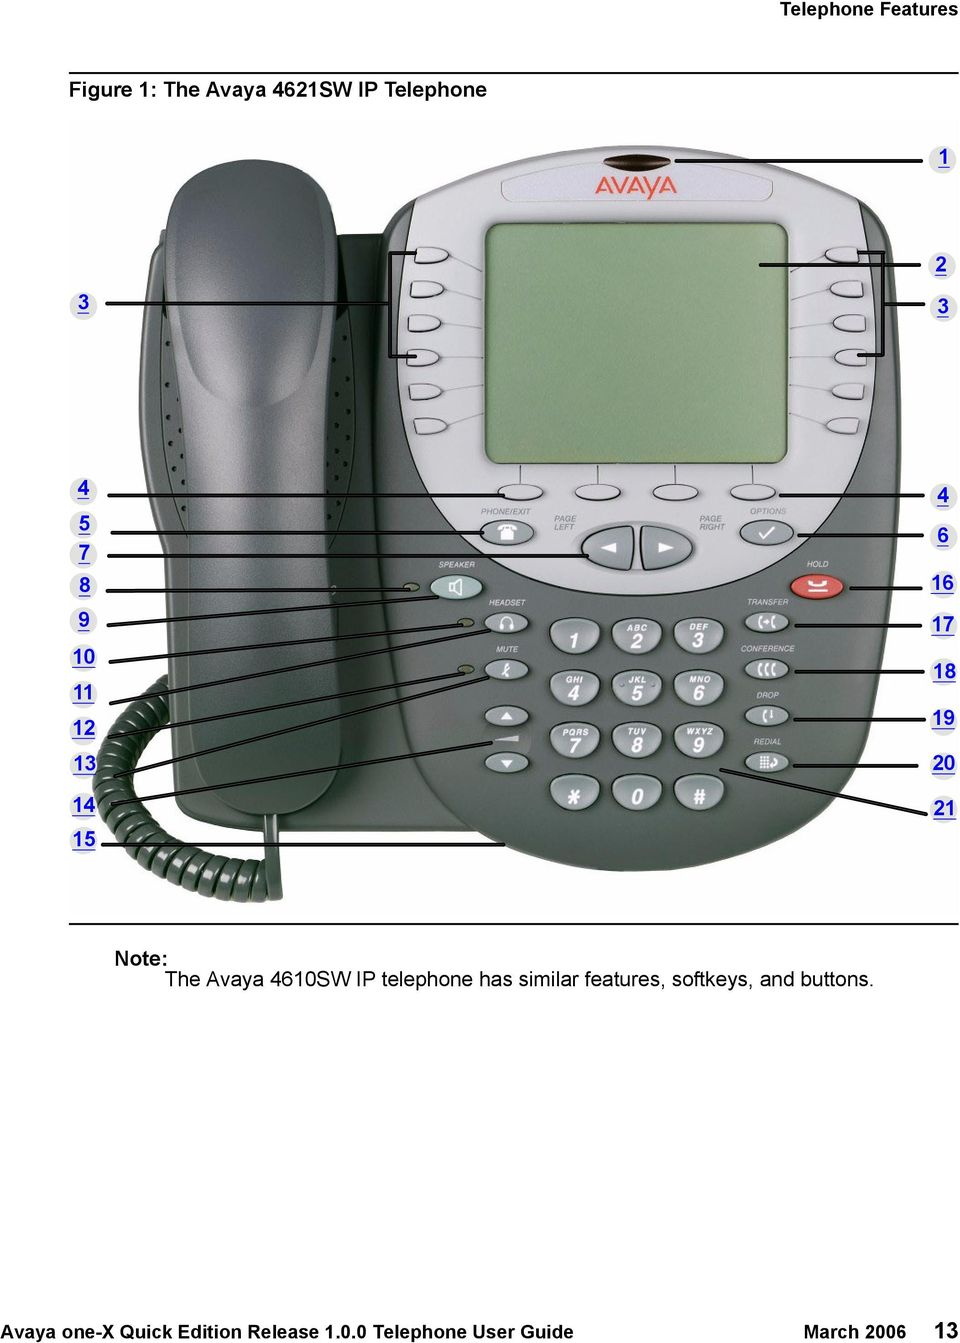 4610SW IP telephone has similar features, softkeys, and buttons.